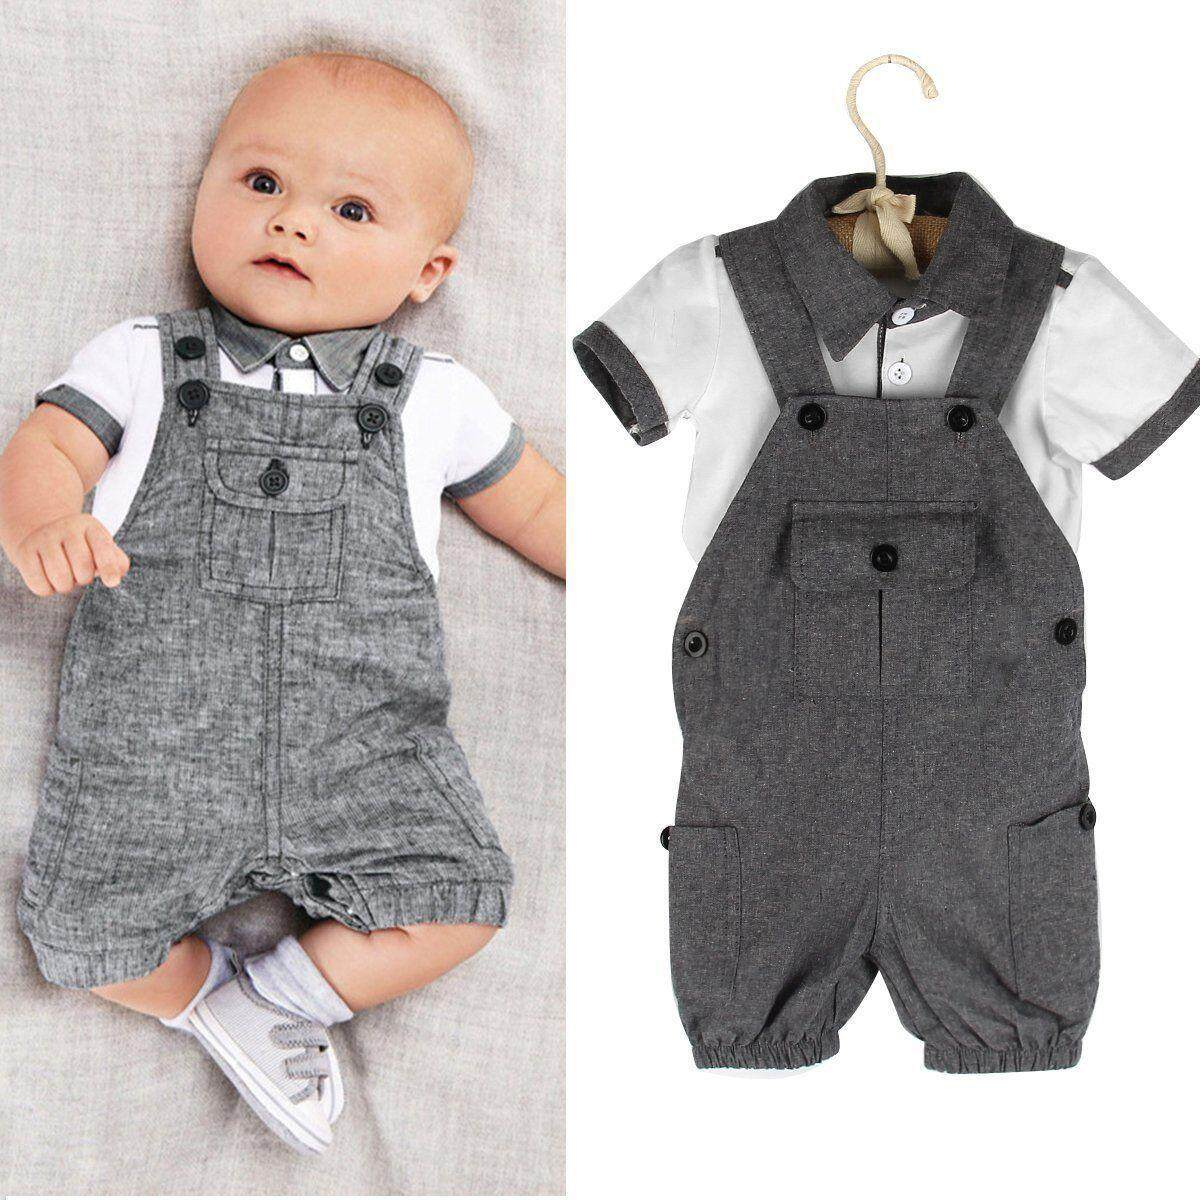 98623f10a Baby Boys  Clothing Sets - Buy Baby Boys  Clothing Sets at Best ...